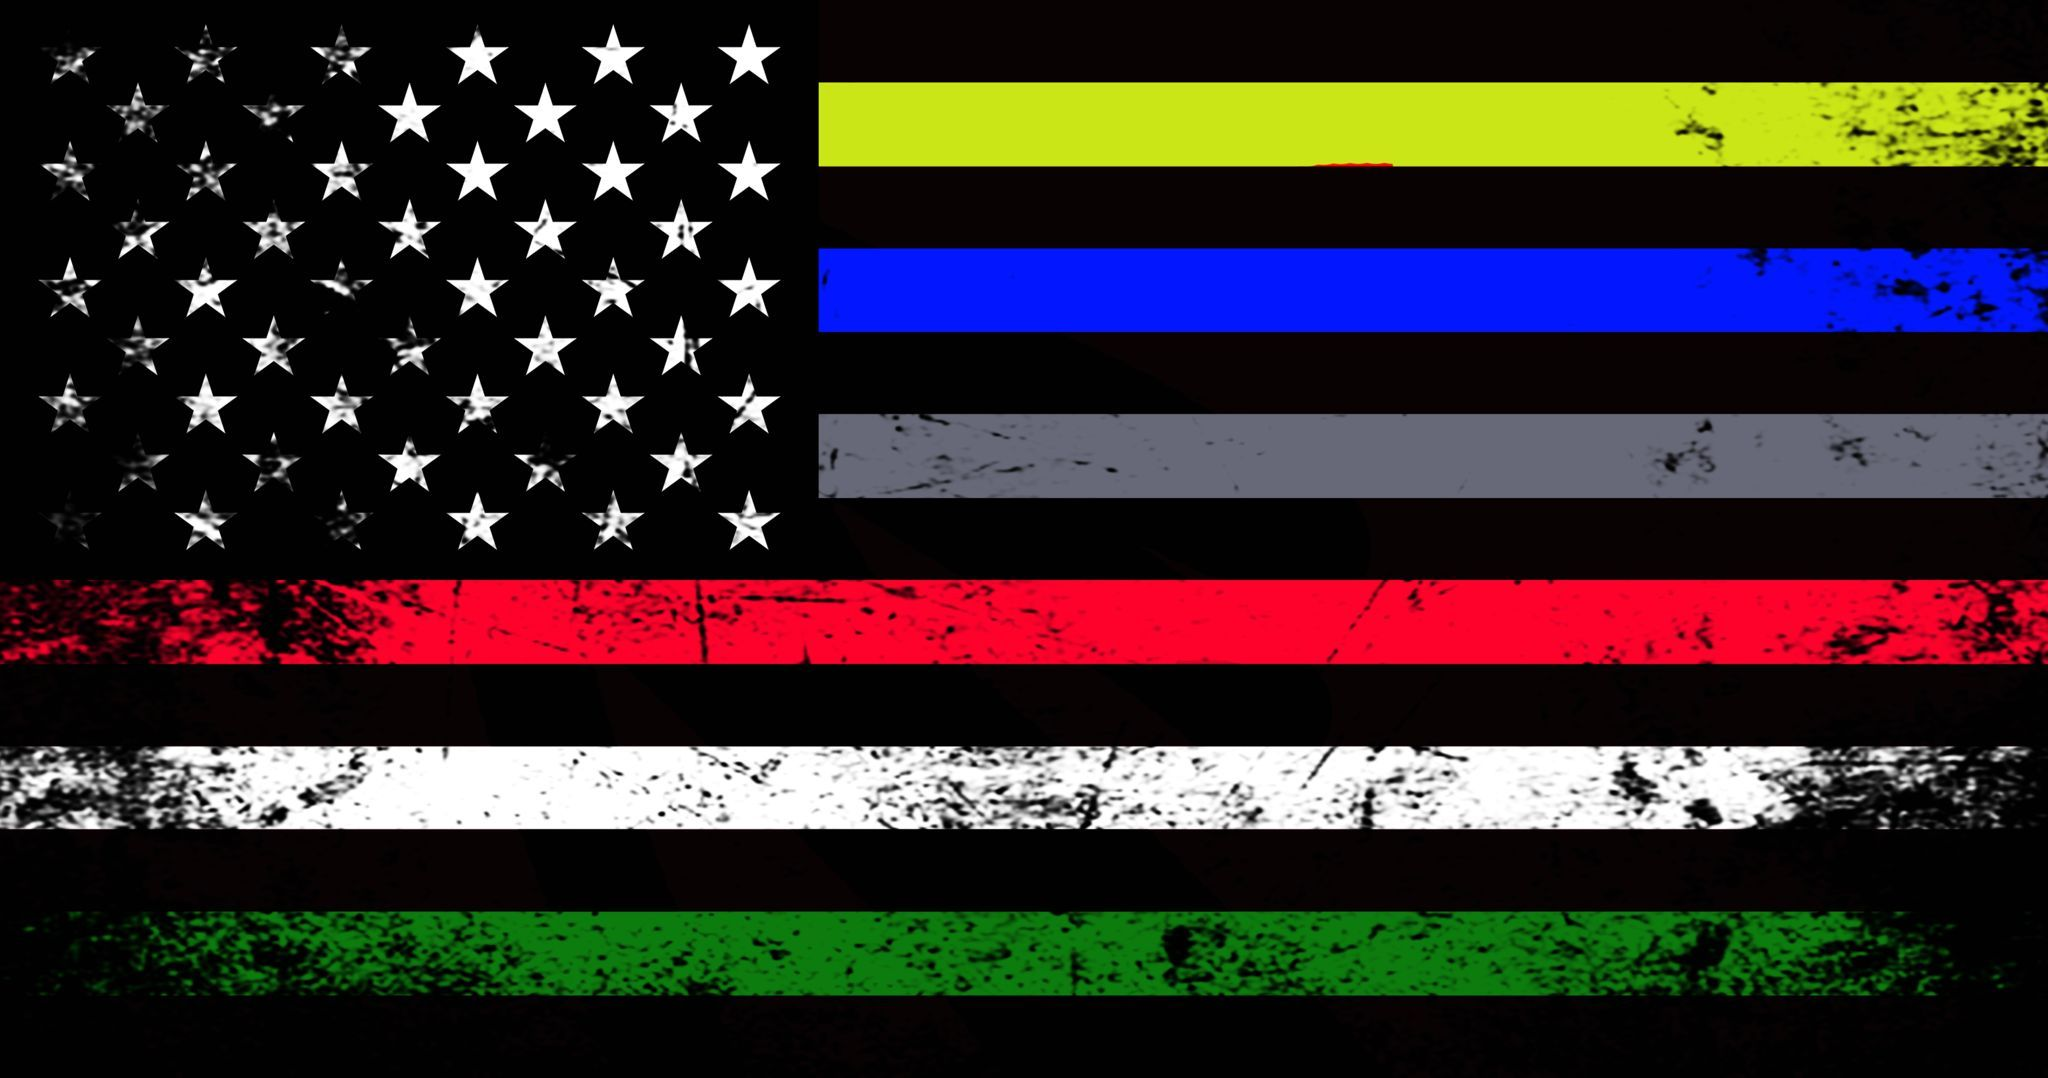 Emergency Services Support Flag Decal Flag Decal America Art Military Flag